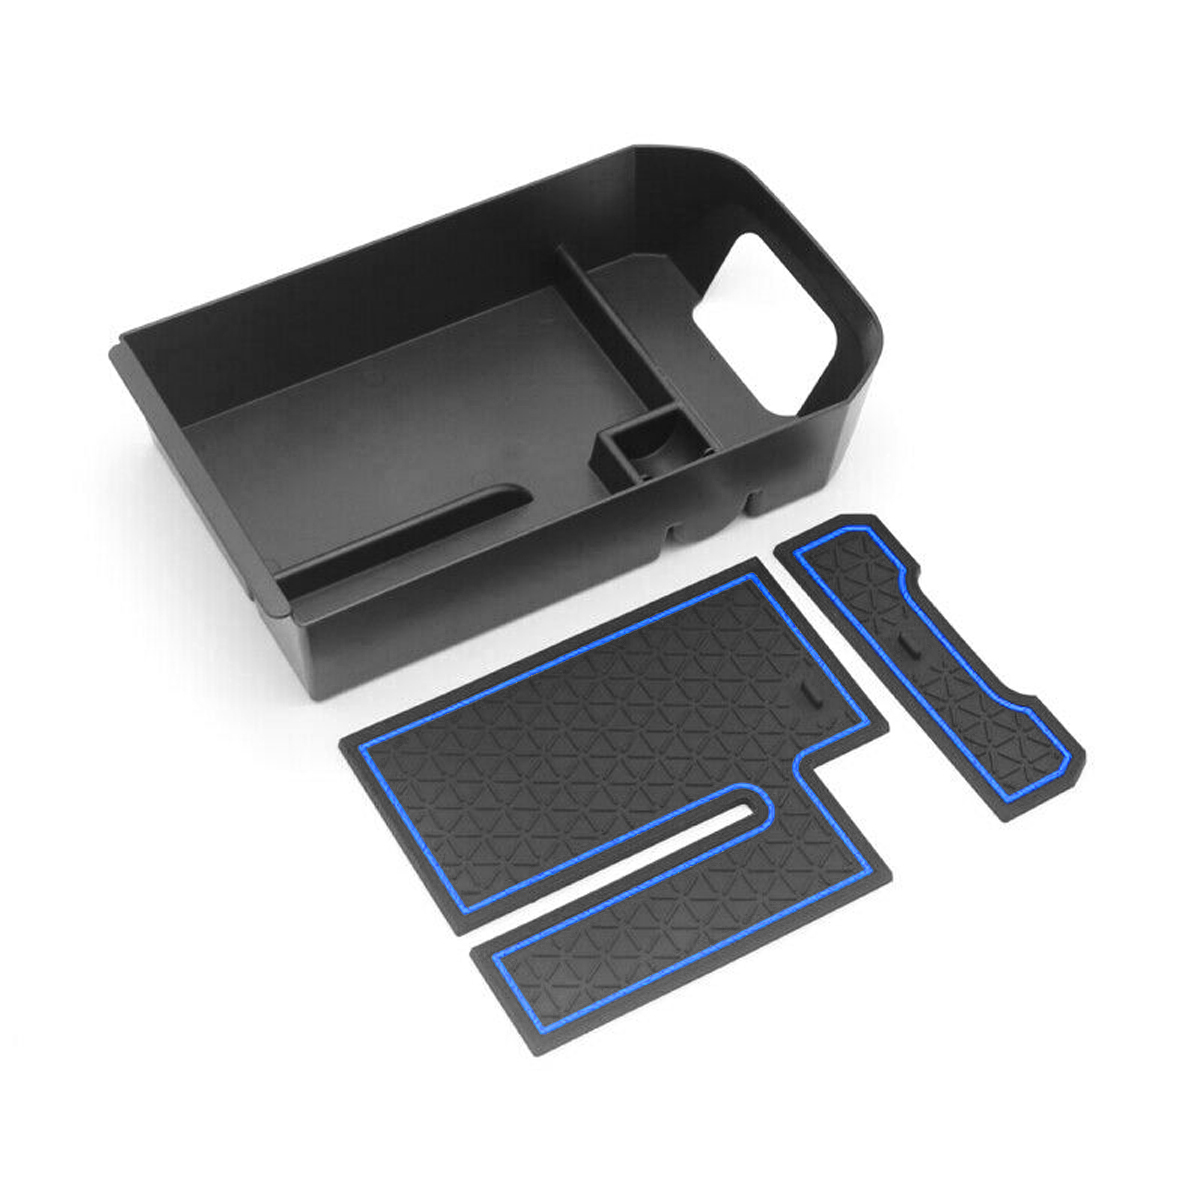 SKTU Compatible with 2020 2021 Celtos Car Center Console Organizer Insert ABS Black Materials Tray Kia Armrest Box Glove Secondary Storage Box with Coin and USB Hole